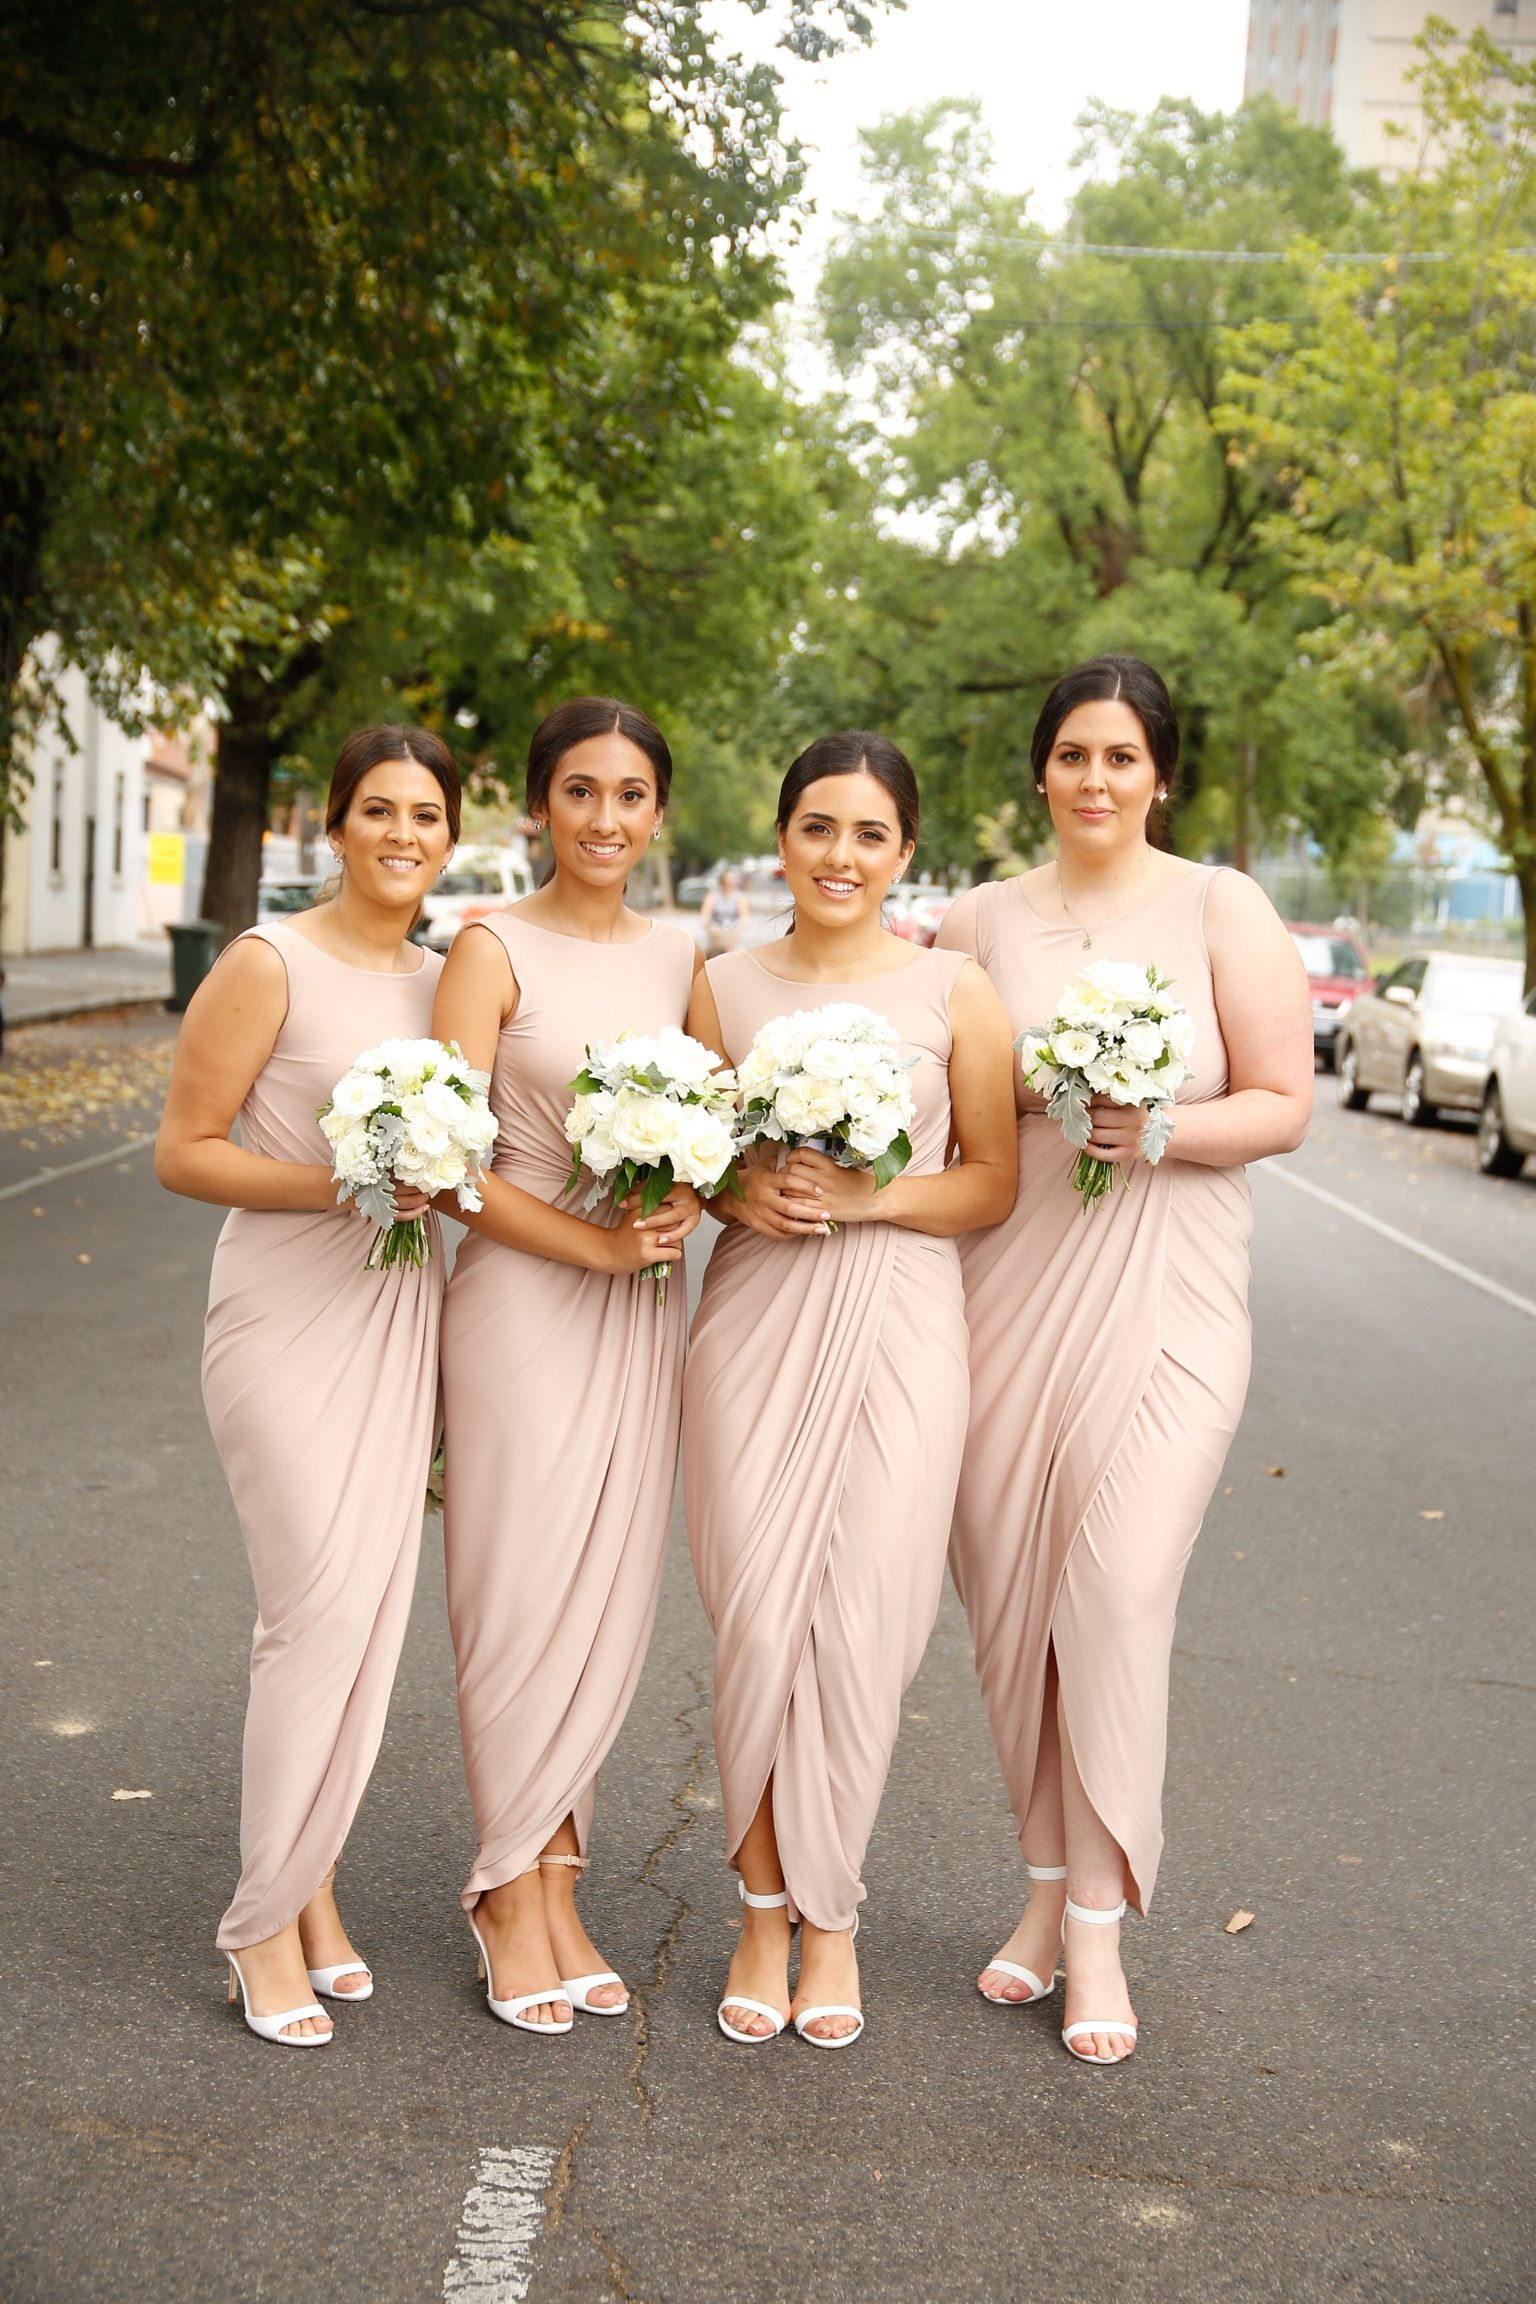 Our beautiful melbourne bride jeanette chose the bessy dress in our beautiful melbourne bride jeanette chose the bessy dress in nude for her bridesmaids ombrellifo Image collections